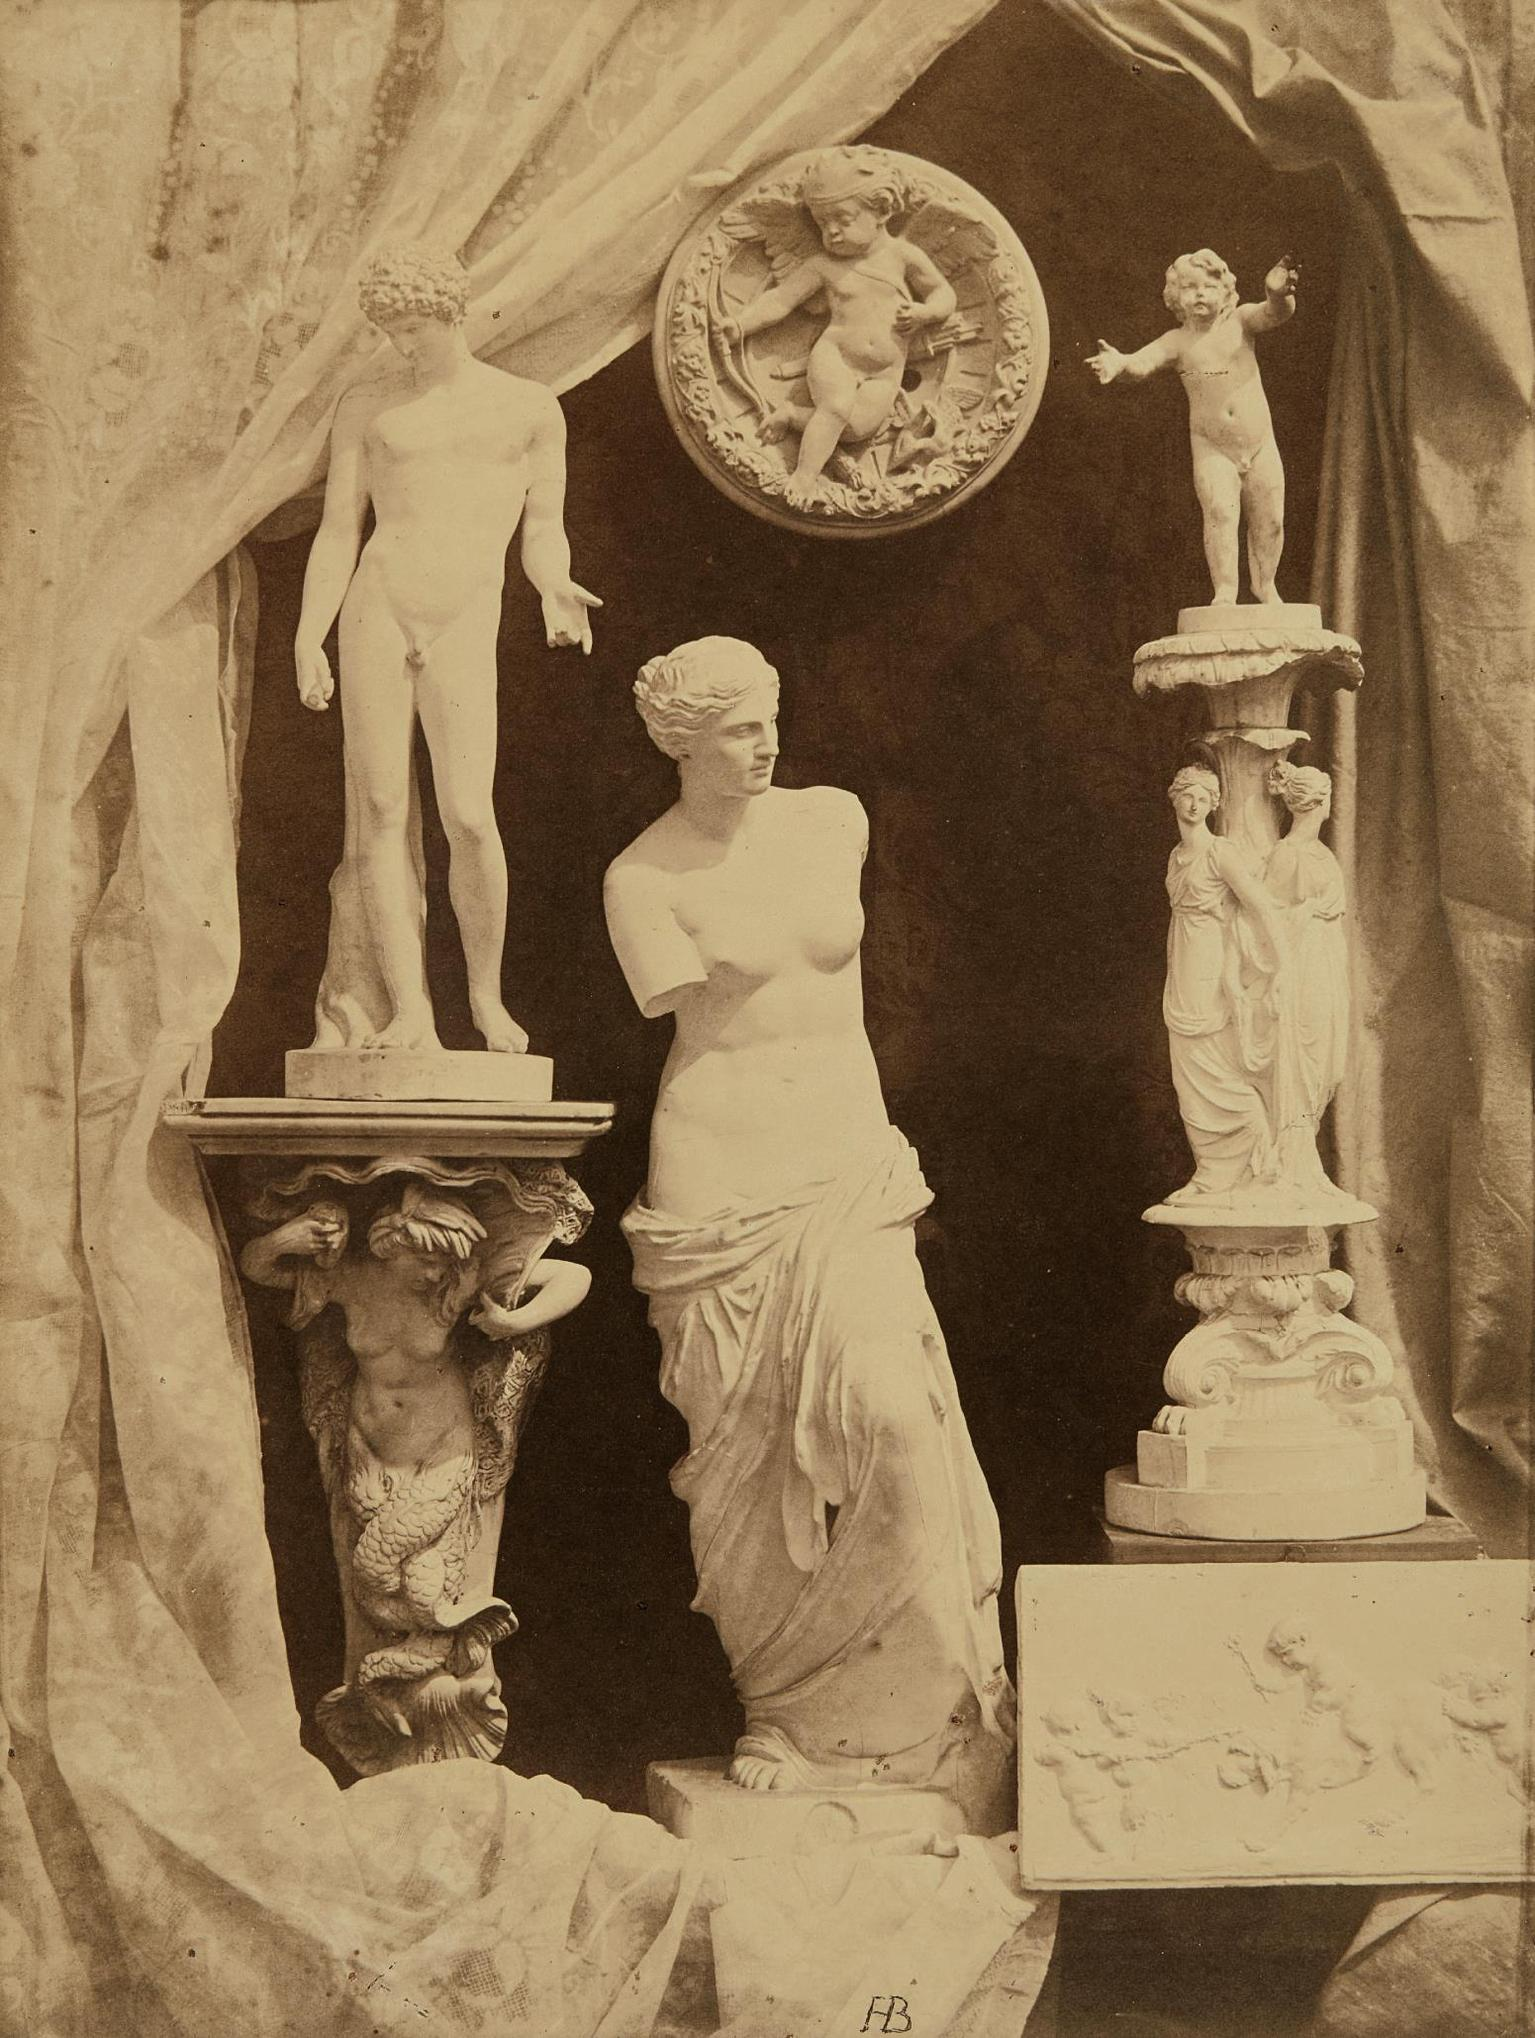 Hippolyte Bayard-Untitled (Still Life With Statuary)-1855